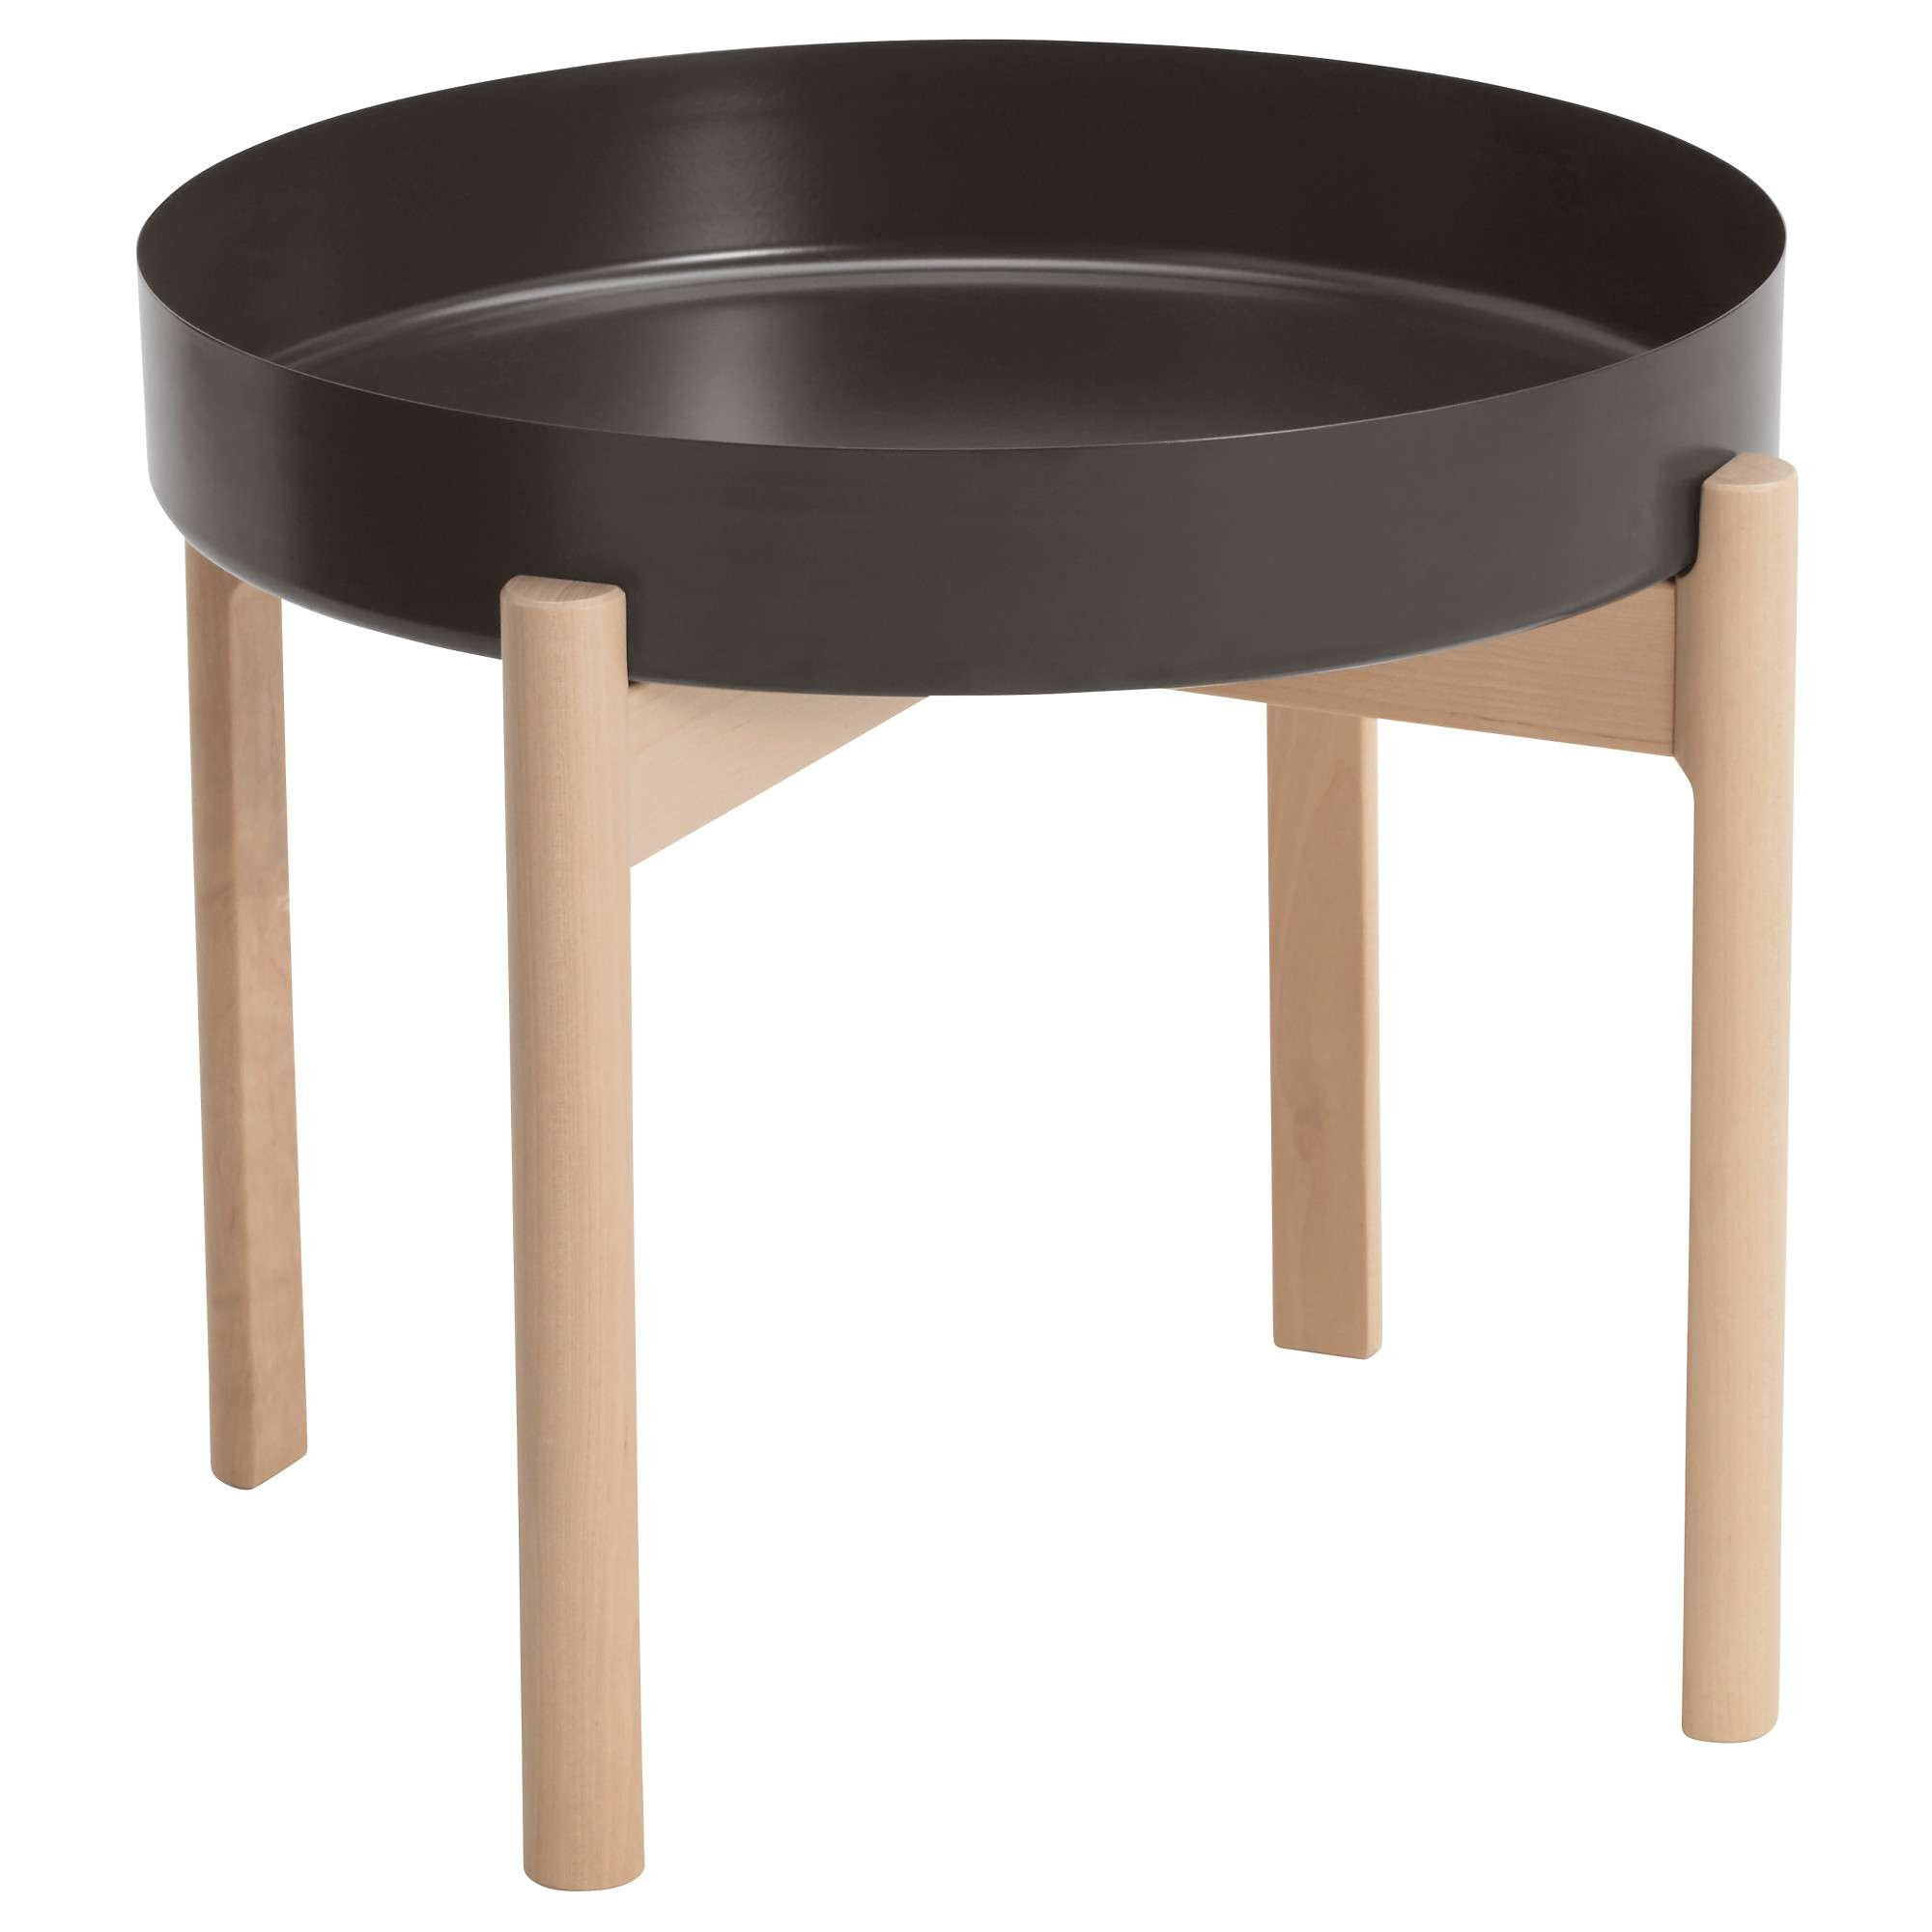 Ypperlig Coffee Table Dark Grey/birch 50 Cm – Ikea With 2017 Birch Coffee Tables (View 20 of 20)